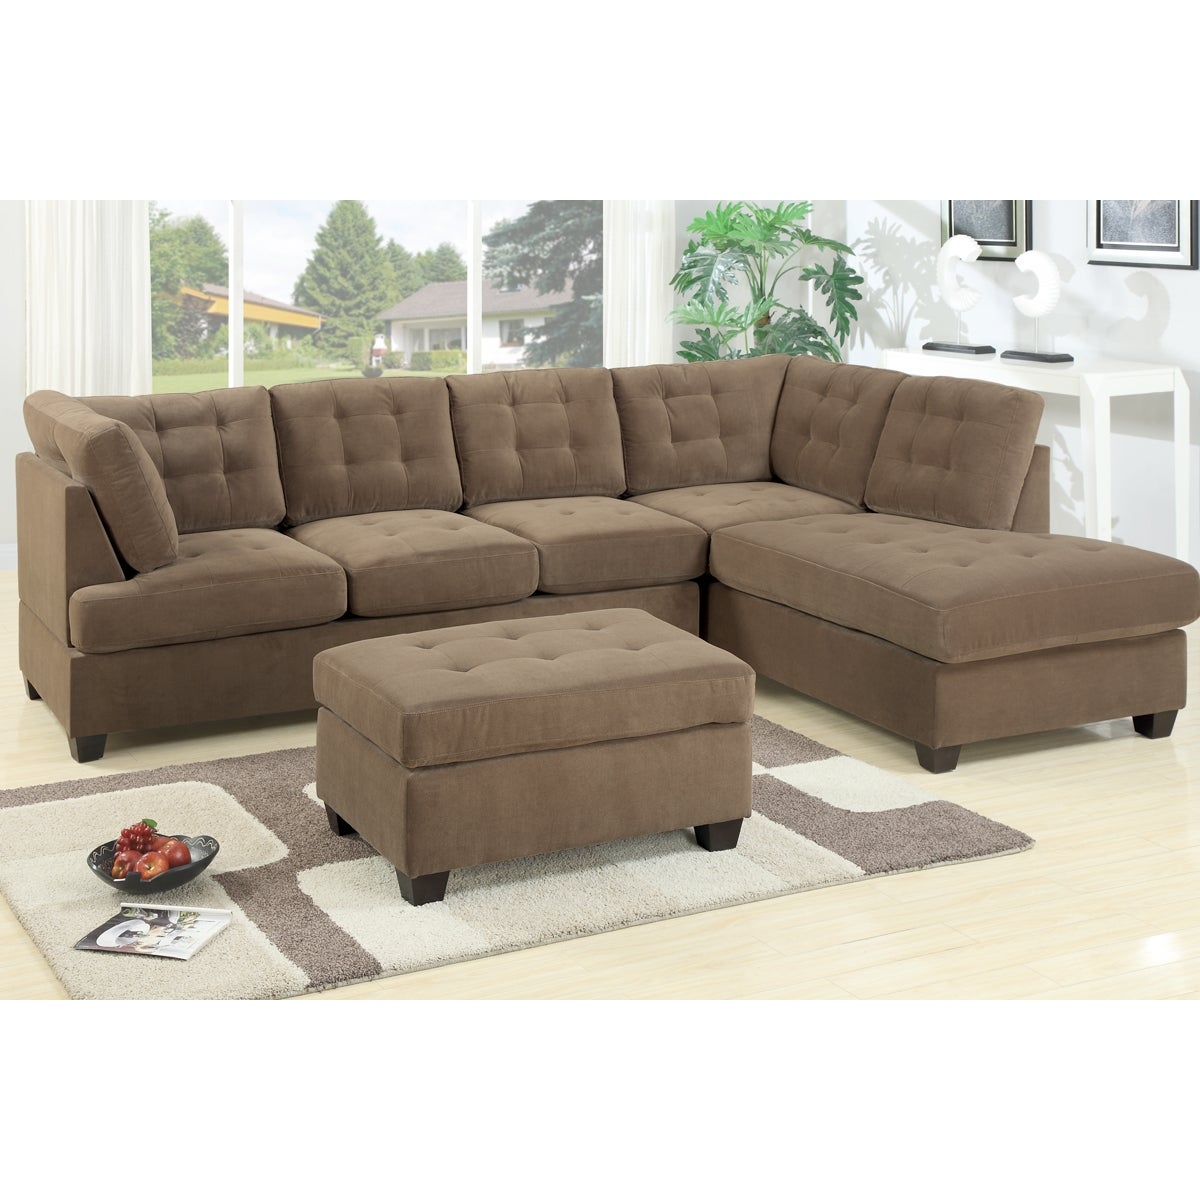 Shop odessa waffle suede reversible sectional sofa free shipping today overstock com 9408018